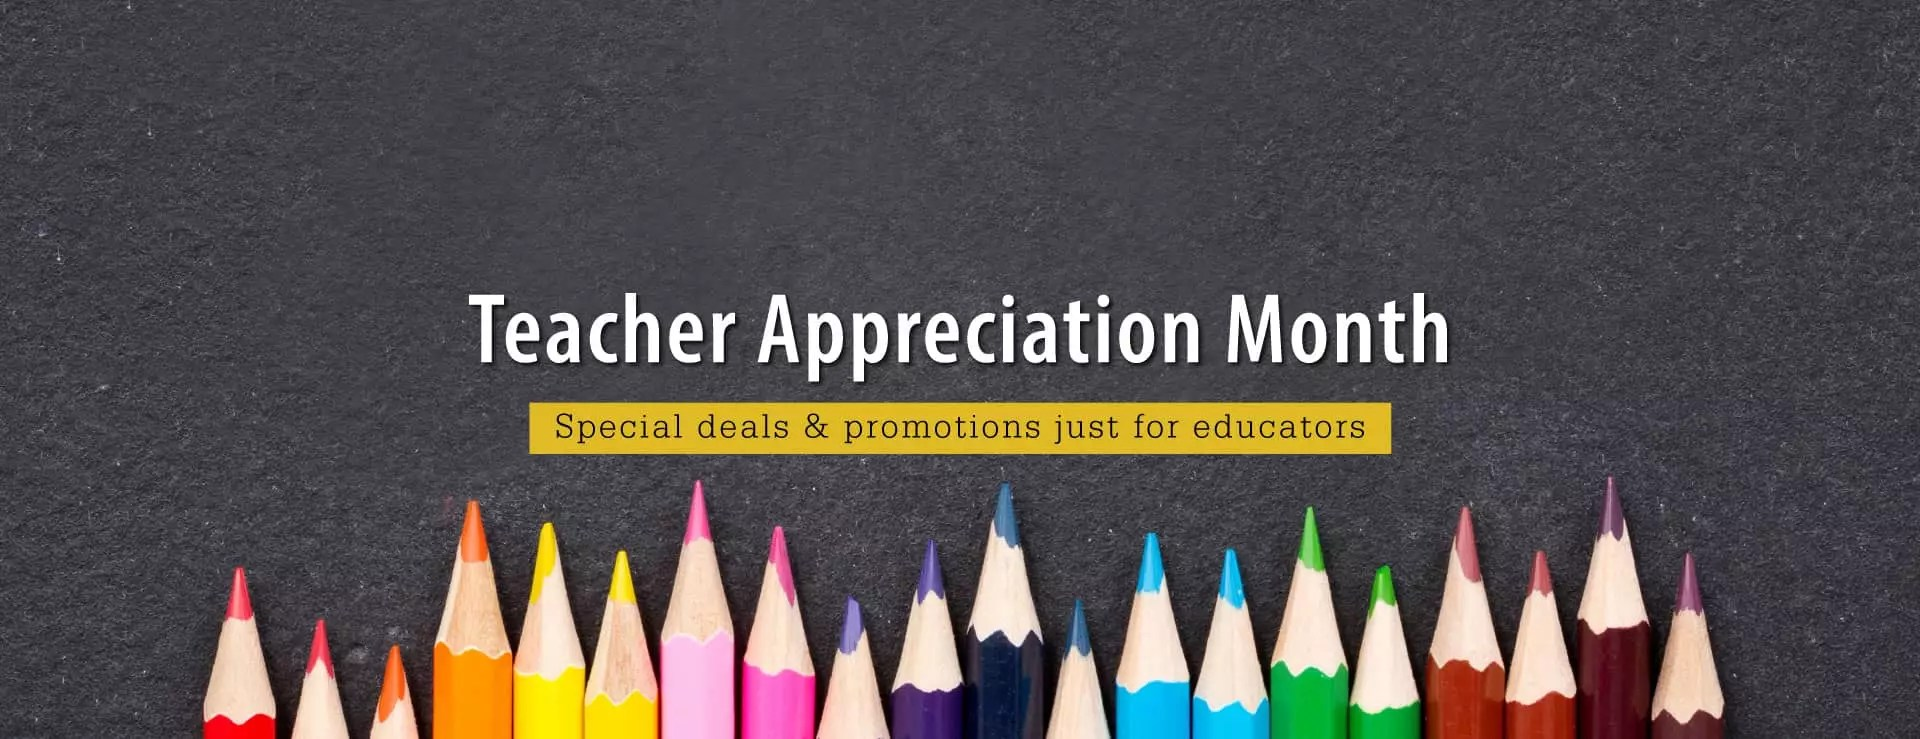 teacher-appreciation-month-web-min